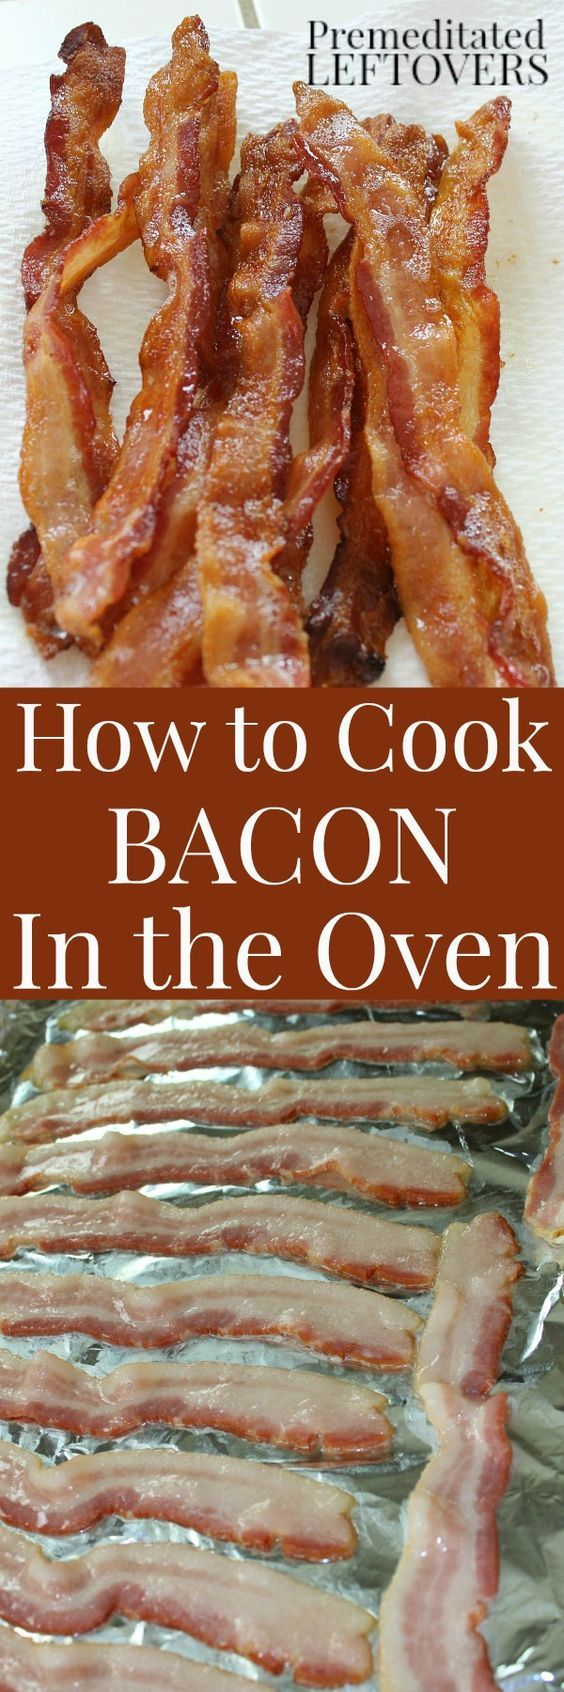 how to cook bacon in the oven recipe bacon bacon in